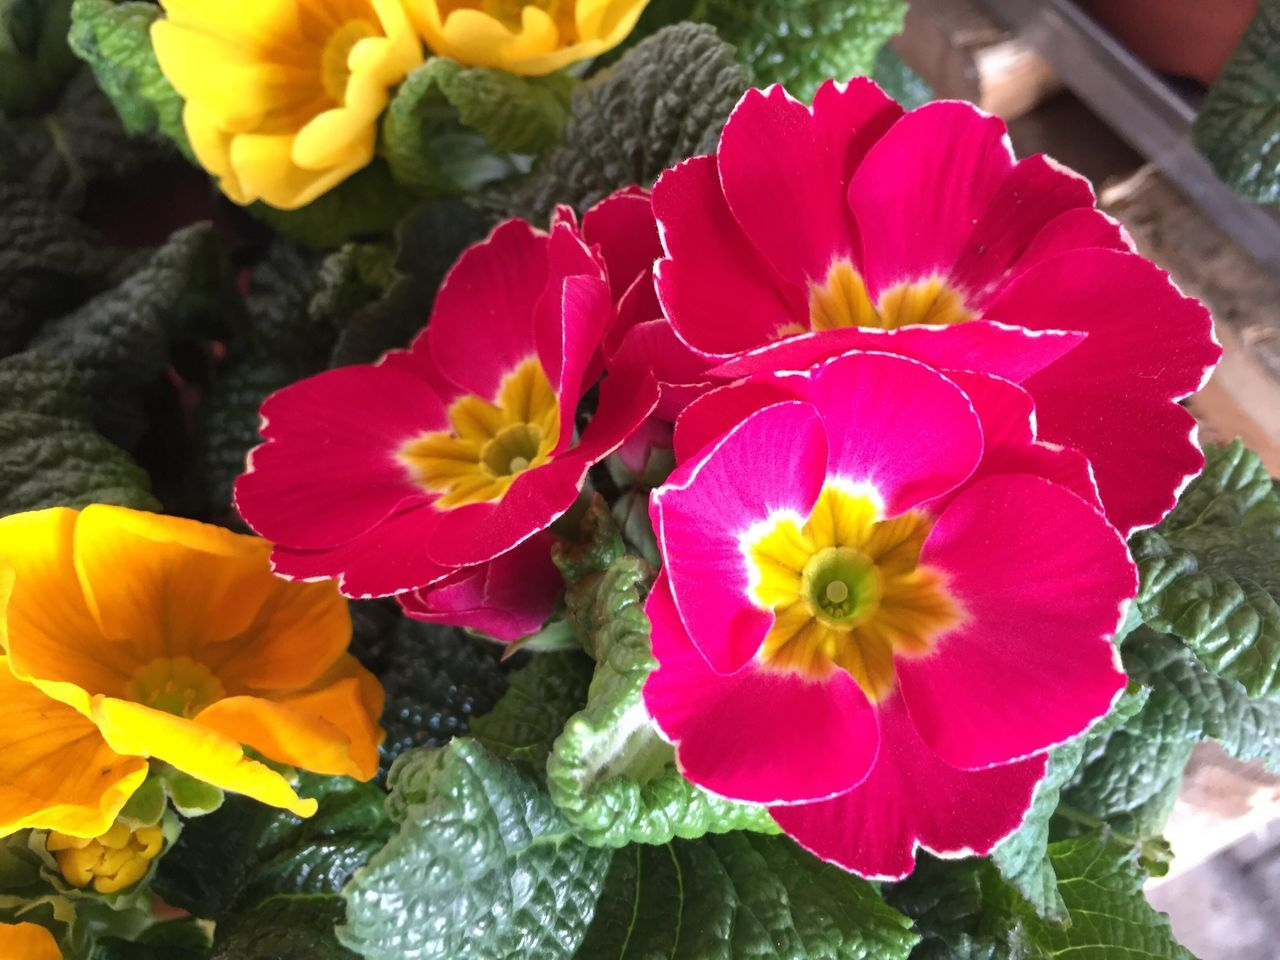 Flower Petal Fragility Beauty In Nature Nature Flower Head Plant Freshness Close-up Growth Blooming Yellow No People Outdoors Day Blossom Plant Growth Nature Beauty In Nature Freshness Primrose